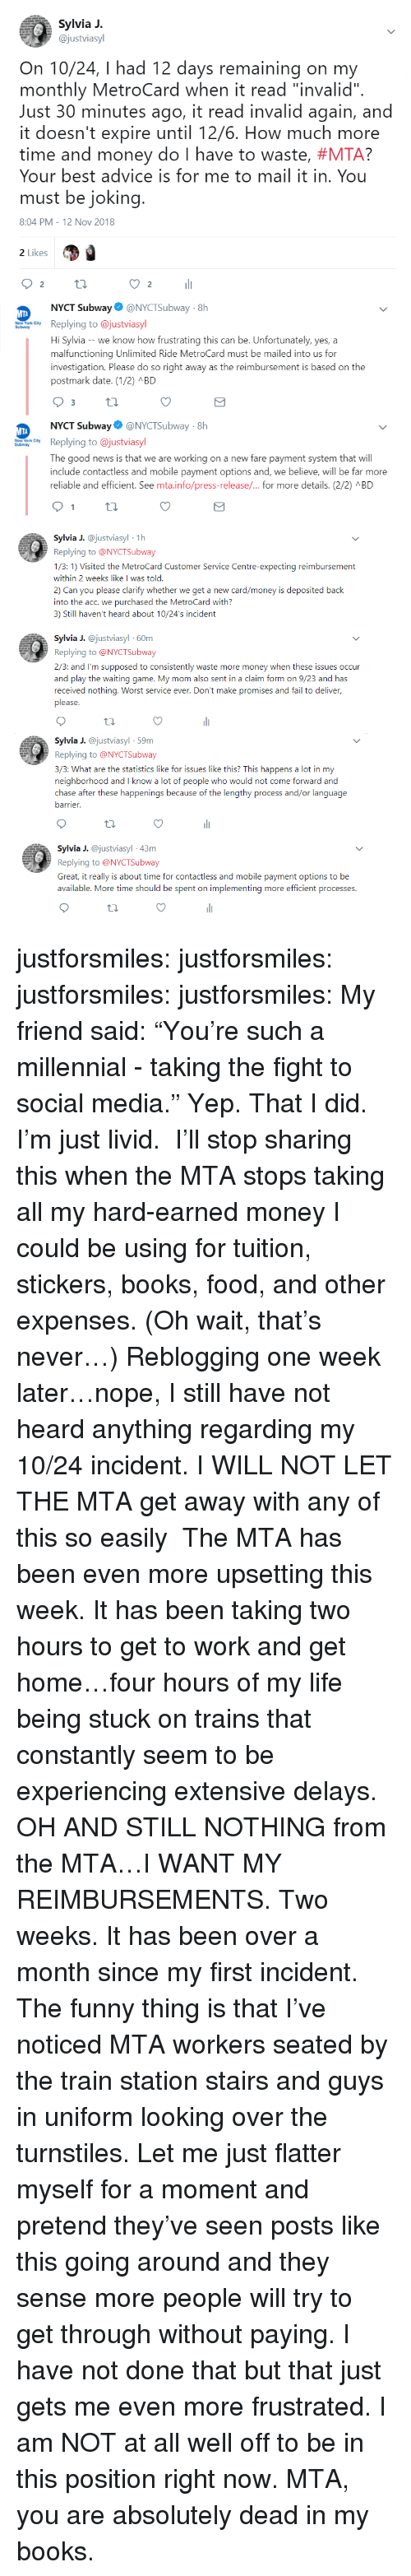 "Advice, Books, and Fail: Sylvia J.  @justviasyl  On 10/24, I had 12 days remaining on my  monthly MetroCard when it read ""invalid""  Just 30 minutes ago, it read invalid again, and  it doesn't expire until 12/6. How much more  time and money do I have to waste, #MTA?  Your best advice is for me to mail it in. You  must be jokin  8:04 PM-12 Nov 2018  2 Likes  2  li  2  NYCT Subway@NYCTSubway-8h  wReplying to @justviasyl  Hi Sylvia - -we know how frustrating this can be. Unfortunately, yes, a  malfunctioning Unlimited Ride MetroCard must be mailed into us for  investigation. Please do so right away as the reimbursement is based on the  postmark date. (12) ABD  NYCT Subway@NYCTSubway 8h  Replying to @justviasyl  The good news is that we are working on a new fare payment system that will  include contactless and mobile payment options and, we believe, will be far more  reliable and efficient. See mtainfo/press-release/ for more details. (2/2) л BD  a J. @justviasyl 1h  Replying to @NYCTSubway  1/3: 1) Visited the MetroCard Customer Service Centre-expecting reimbursement  within 2 weeks like I was told.  2) Can you please clarify whether we get a new card/money is deposited baclk  into the acc. we purchased the MetroCard with?  3) Still haven't heard about 10/24's incident  Sylvia J. @justviasyl 60m  Replying to @NYCTSubway  2/3: and I'm supposed to consistently waste more money when these issues occur  and play the waiting game. My mom also sent in a claim form on 9/23 and has  received nothing. Worst service ever. Don't make promises and fail to deliver,  please  Syia J. @justviasyl 59m  Replying to @NYCTSubway  3/3: What are the statistics like for issues like this? This happens a lot in my  neighborhood and I know a lot of people who would not come forward and  chase after these happenings because of the lengthy process and/or language  arrier  Sylia J. @justviasyl 43m  Replying to @NYCTSubway  Great, it really is about time for contactless and mobile payment options to be  available. More time should be spent on implementing more efficient processes. justforsmiles:  justforsmiles:  justforsmiles:  justforsmiles: My friend said: ""You're such a millennial - taking the fight to social media."" Yep. That I did. I'm just livid.  I'll stop sharing this when the MTA stops taking all my hard-earned money I could be using for tuition, stickers, books, food, and other expenses. (Oh wait, that's never…)  Reblogging one week later…nope, I still have not heard anything regarding my 10/24 incident. I WILL NOT LET THE MTA get away with any of this so easily   The MTA has been even more upsetting this week. It has been taking two hours to get to work and get home…four hours of my life being stuck on trains that constantly seem to be experiencing extensive delays. OH AND STILL NOTHING from the MTA…I WANT MY REIMBURSEMENTS. Two weeks. It has been over a month since my first incident. The funny thing is that I've noticed MTA workers seated by the train station stairs and guys in uniform looking over the turnstiles. Let me just flatter myself for a moment and pretend they've seen posts like this going around and they sense more people will try to get through without paying. I have not done that but that just gets me even more frustrated. I am NOT at all well off to be in this position right now. MTA, you are absolutely dead in my books."